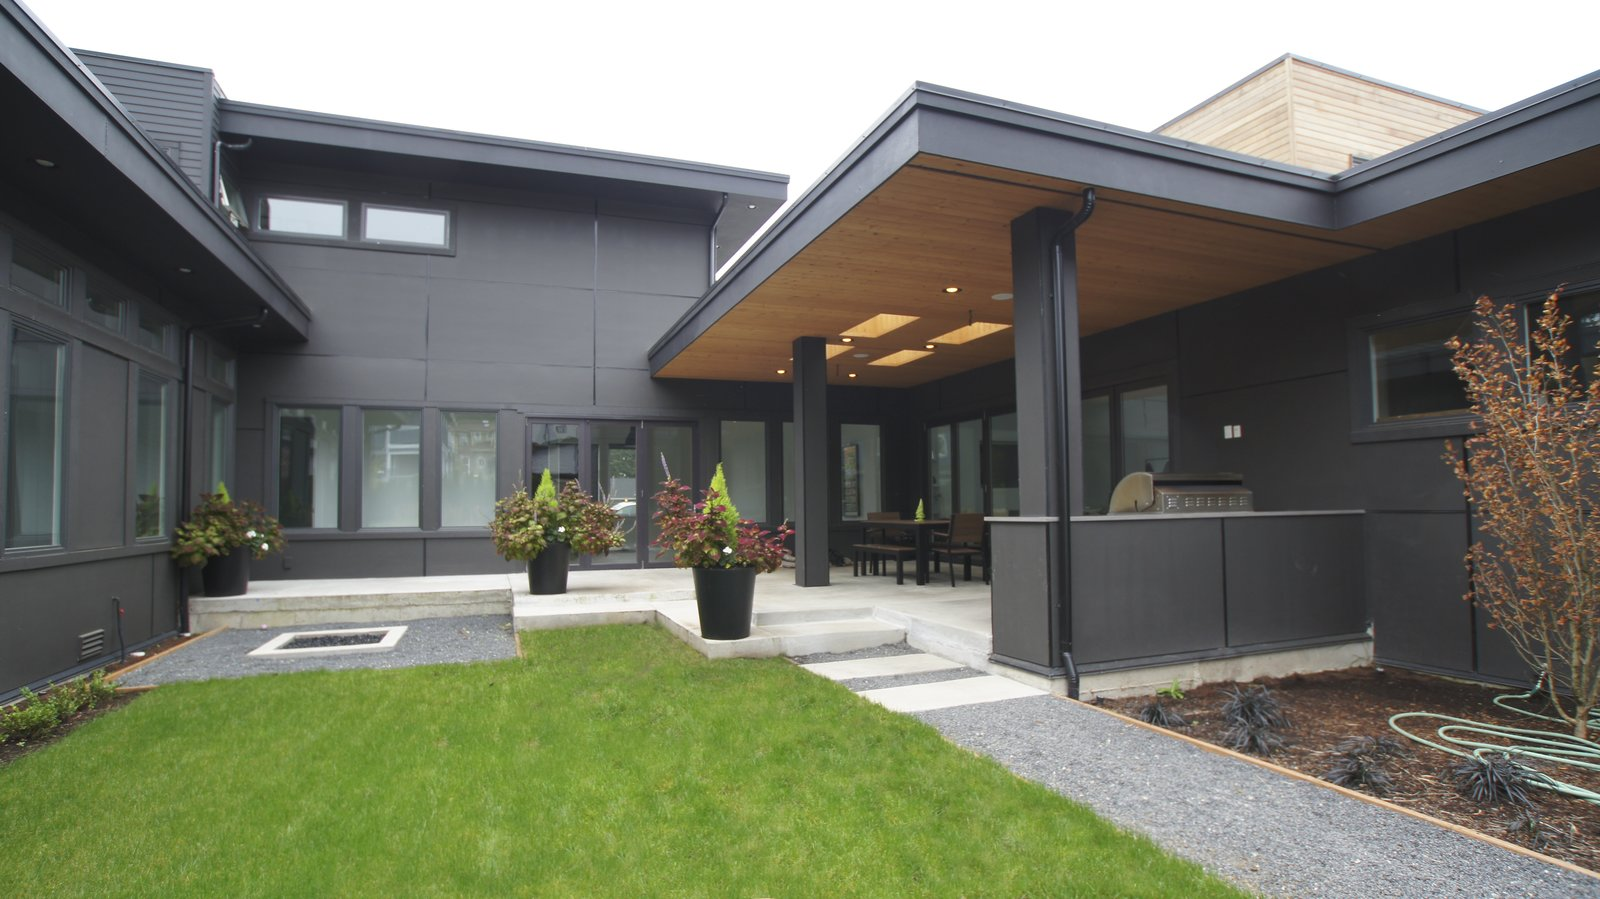 The back of the house has an all grey exterior that lets the modern design speak for itself.